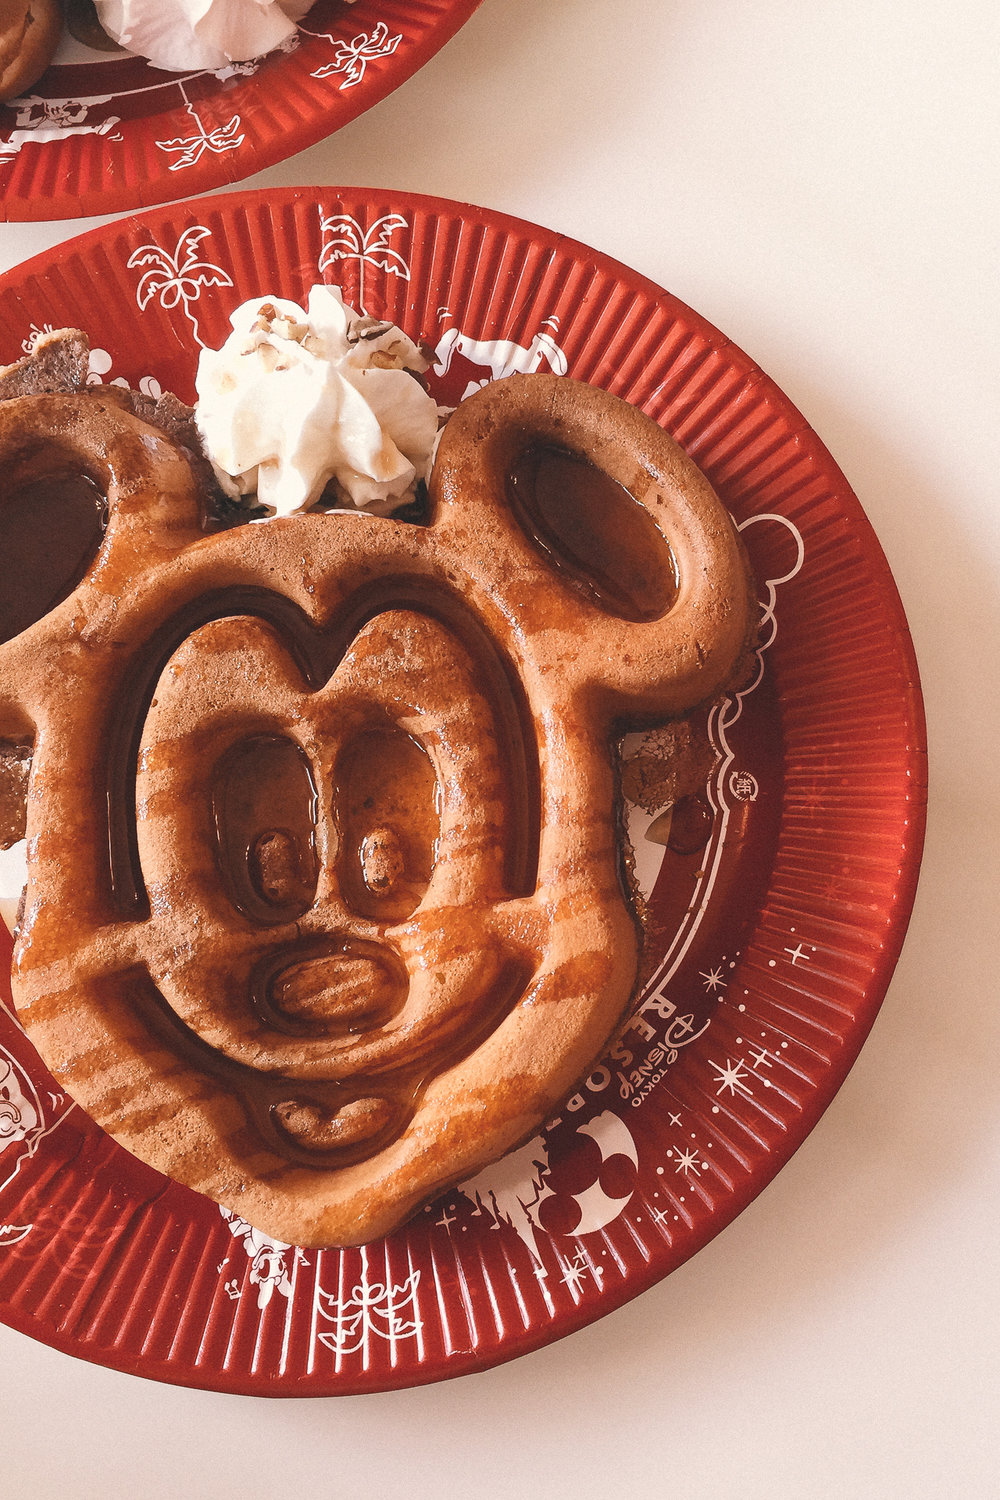 Mickey Mouse Waffle from the Great American Waffle Company  (¥450) While Mickey waffles can be found at all the Disney resorts worldwide, here at Tokyo Disneyland you can enjoy delightful toppings like strawberries & custard or red bean & matcha. It's a great way to start your day,especially if you're too busy chasing characters to eat a proper meal. If you have a moment,  watch the Cast Members prep  the waffles because it's quite amusing.